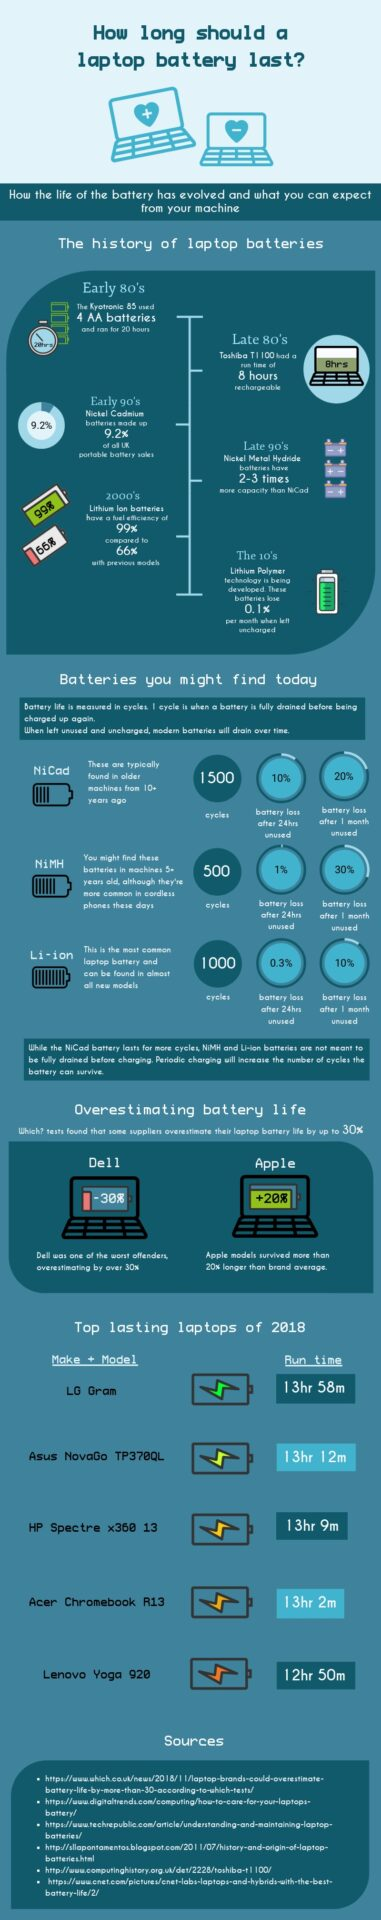 How Long Should a Laptop Battery Last